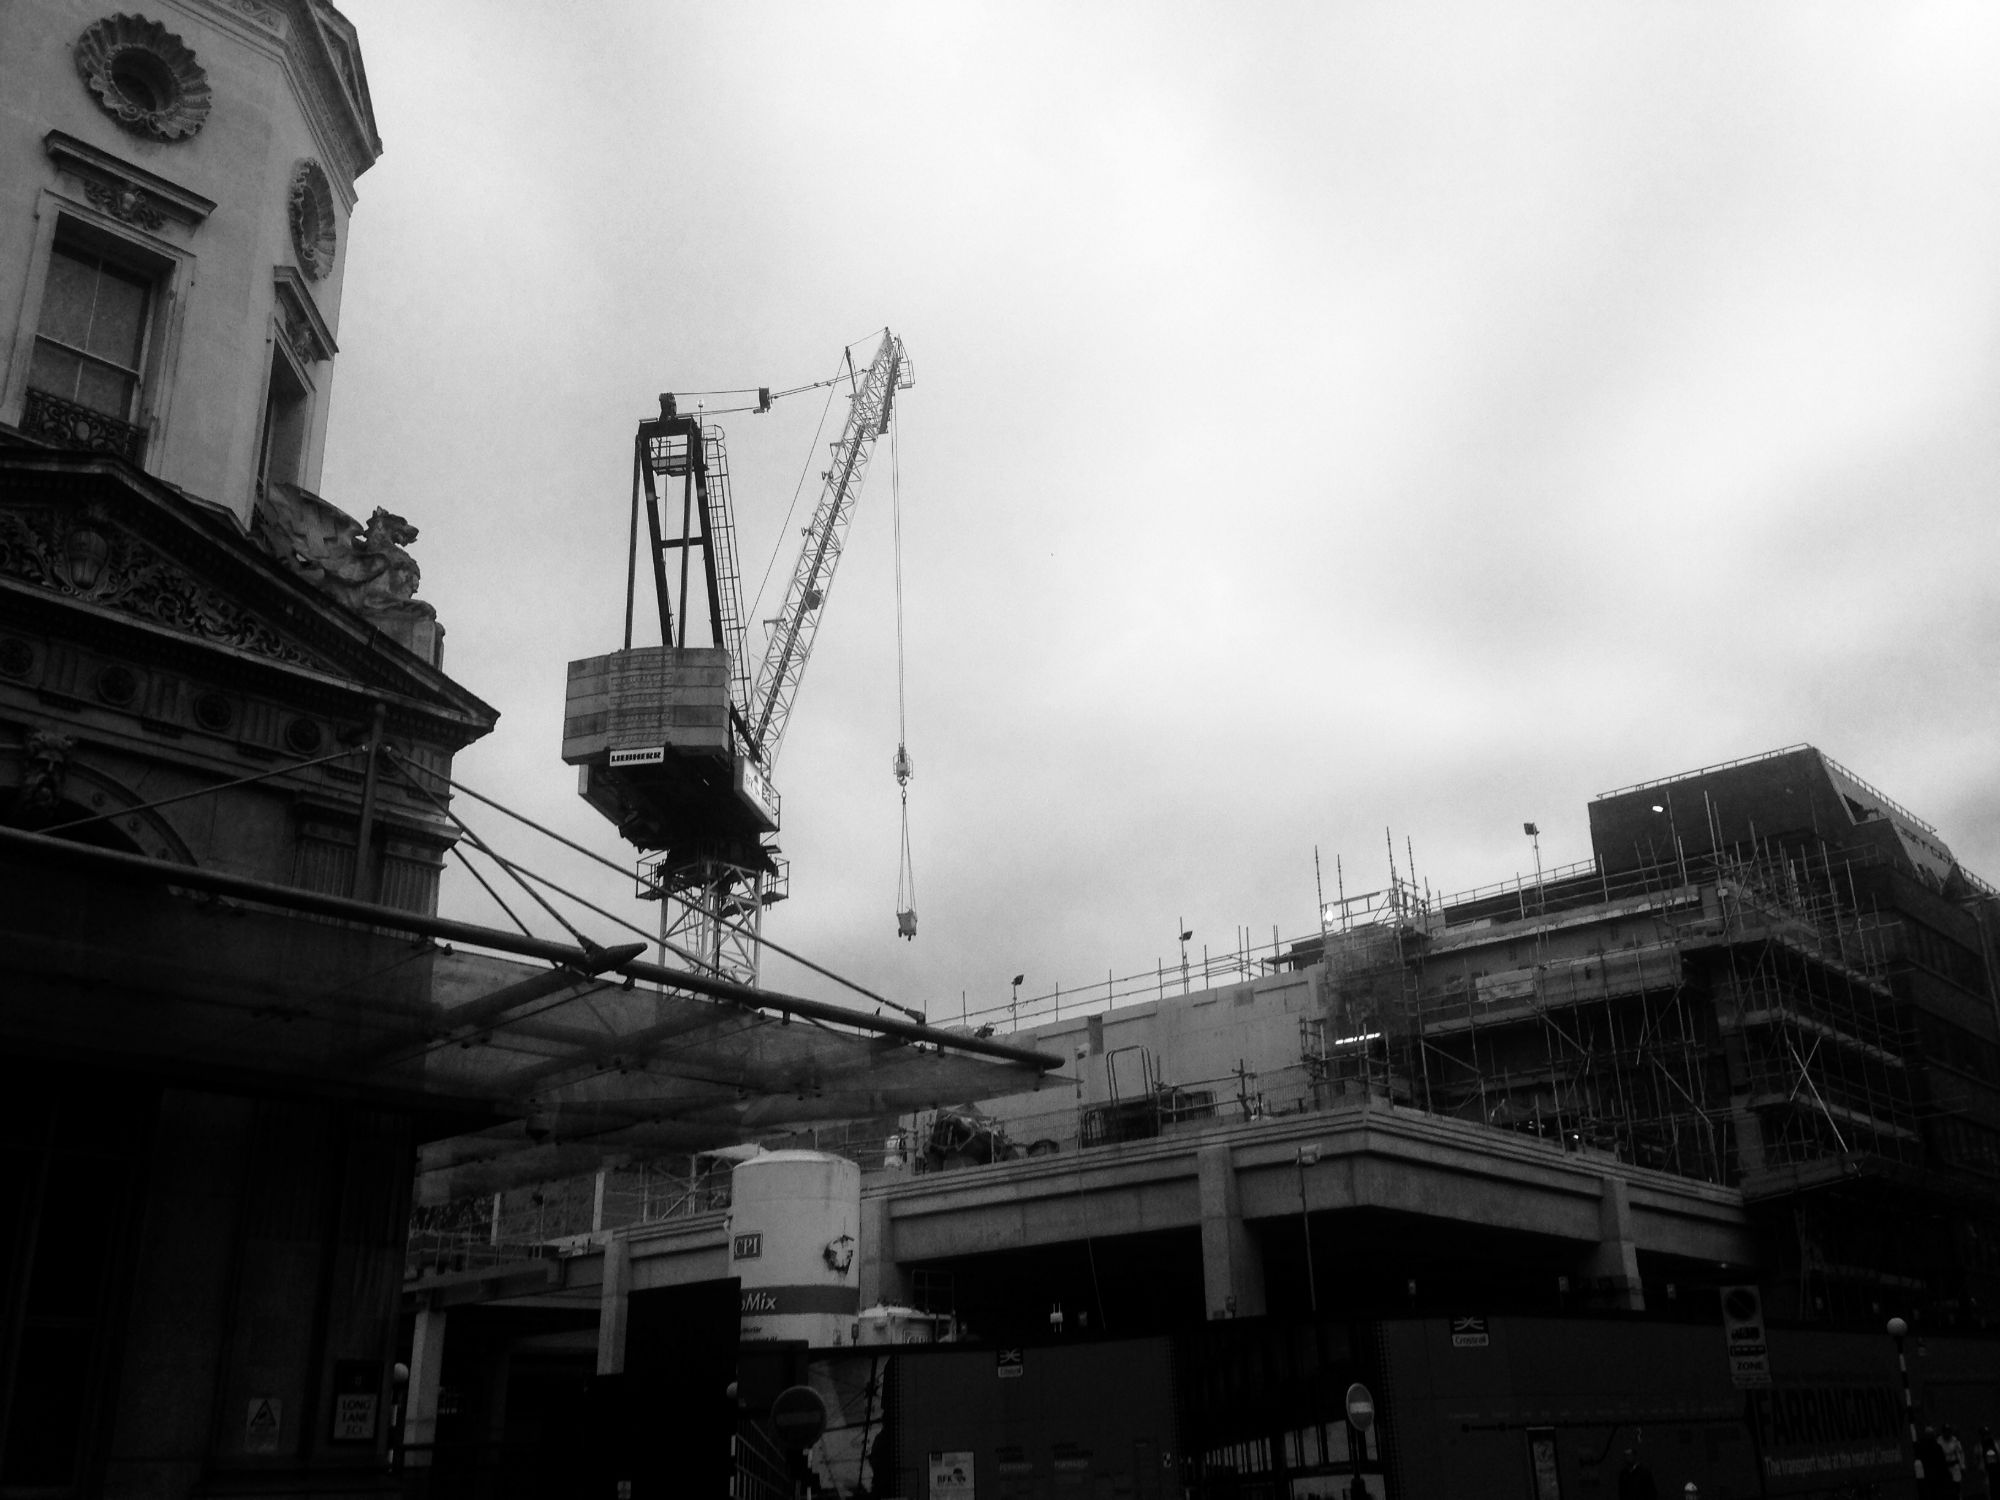 Black and white image of a crane and a building site.